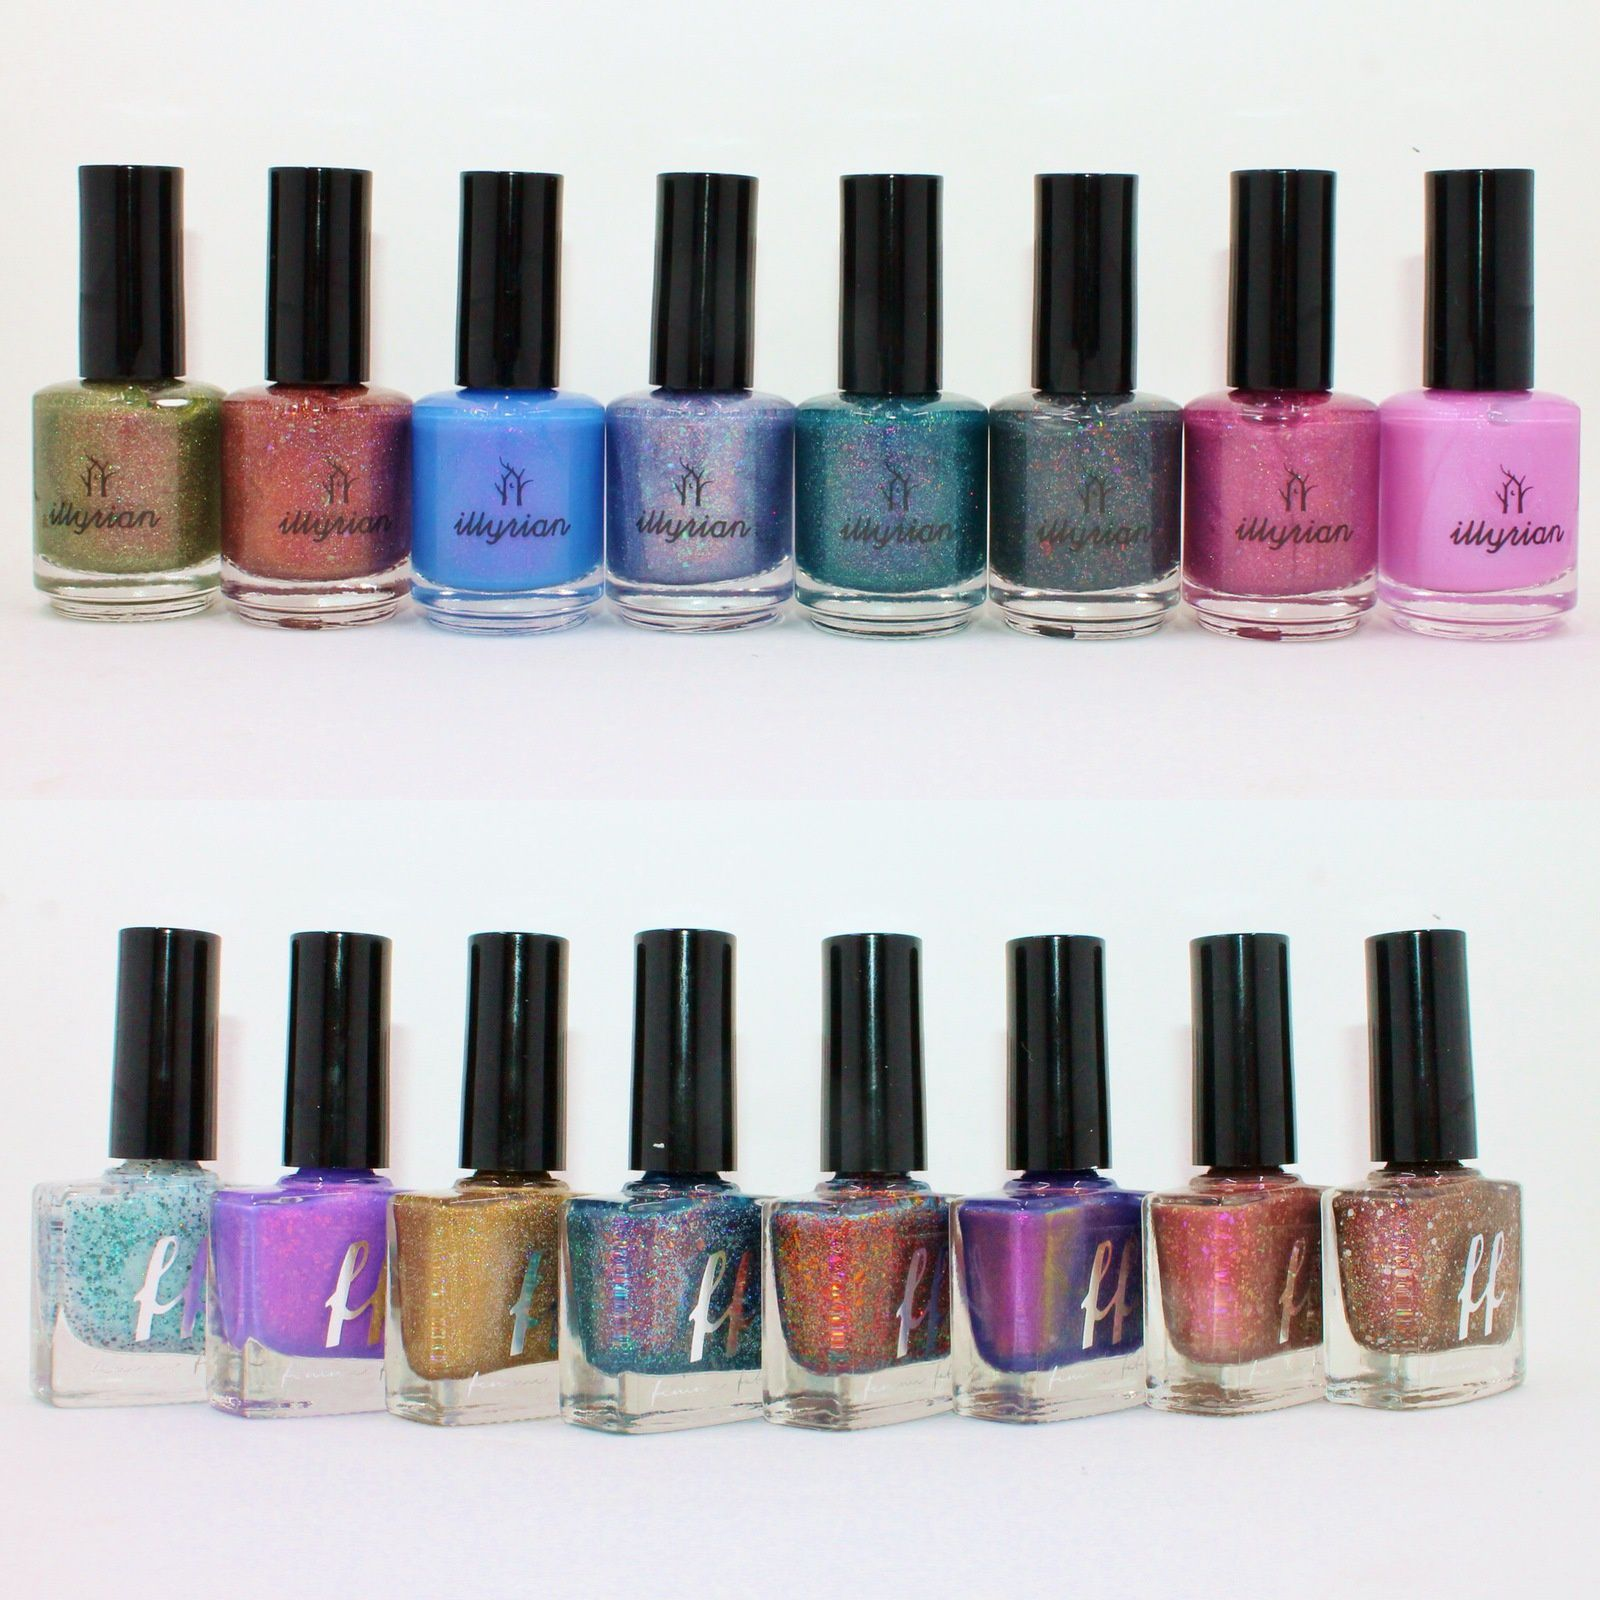 Illyrian Polish Rhapsody, Penny, Lit, Cloud Nine, Trance, Static, Teenage Fever, Afterglow. Femme Fatale Cosmetics Fire Lily Collection.